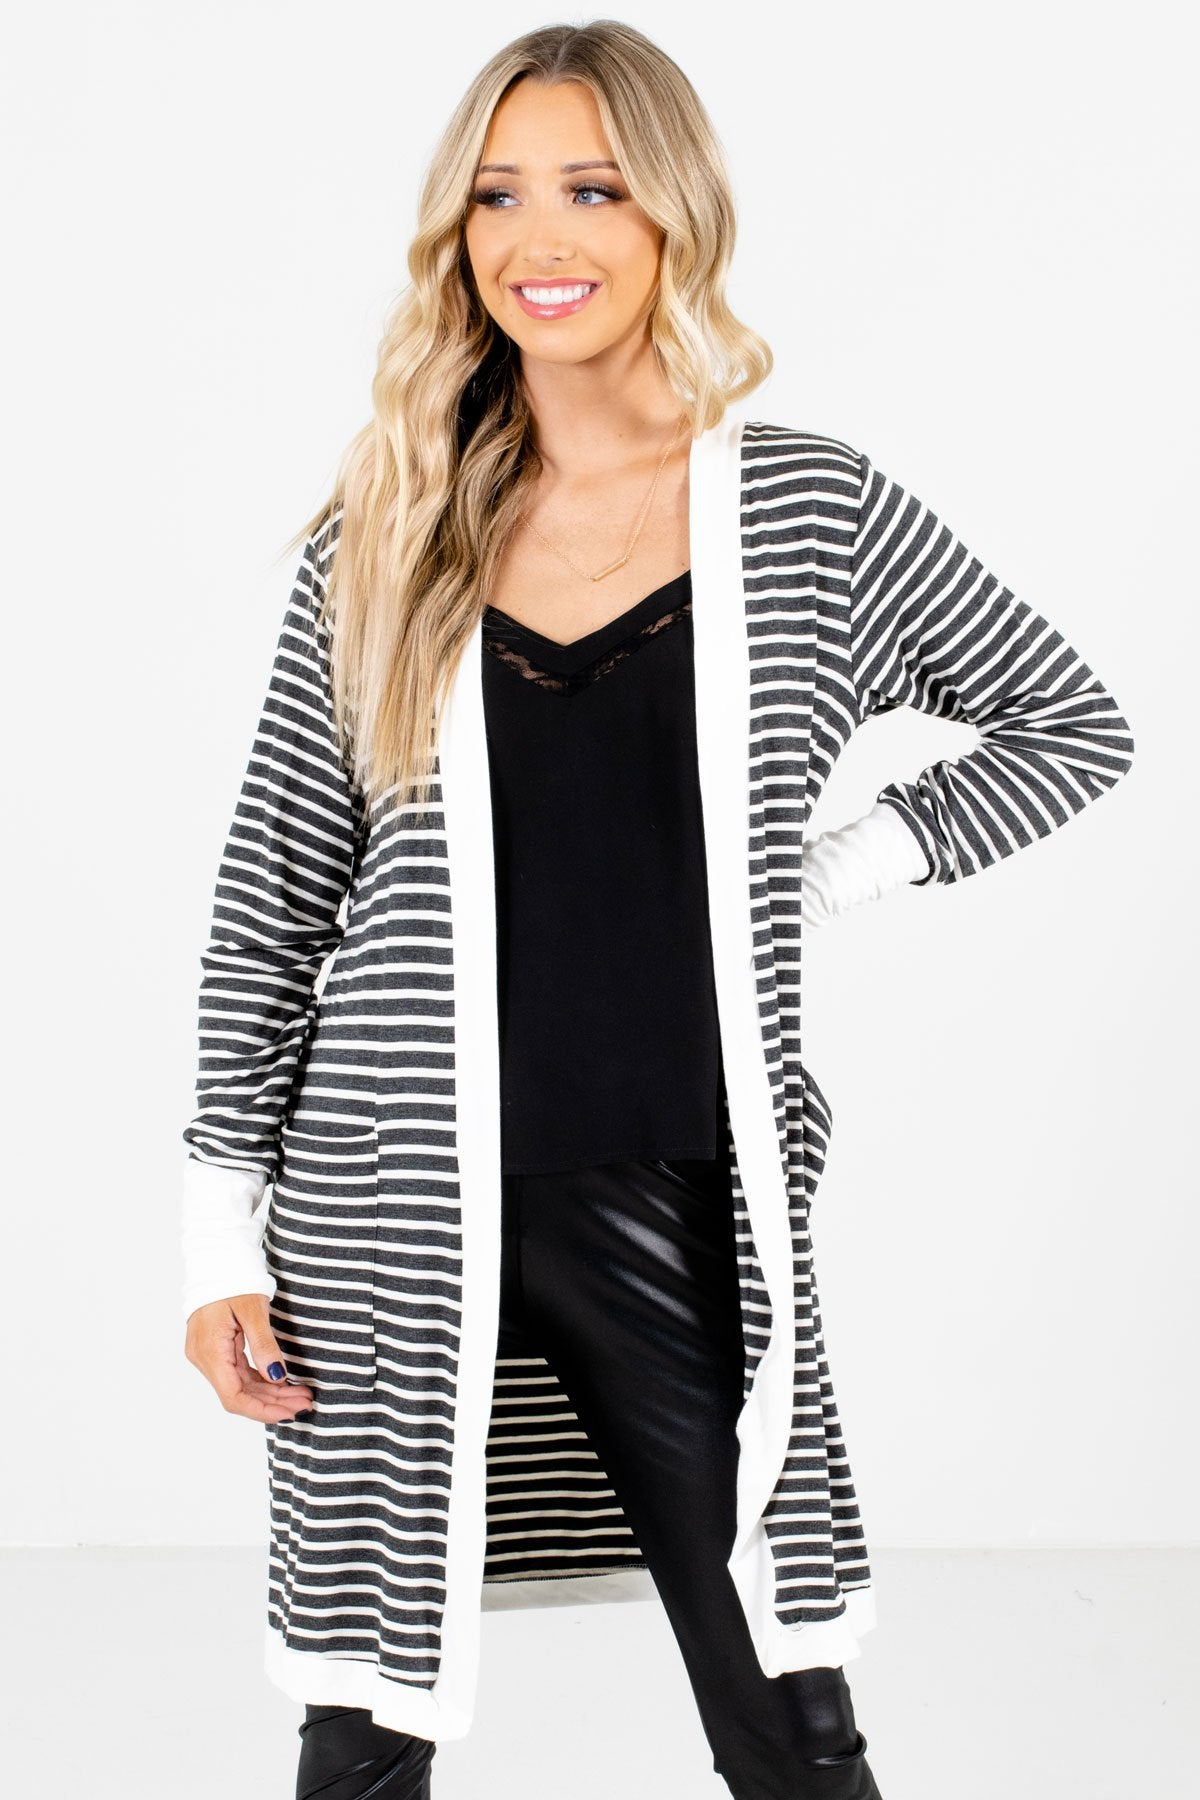 Gray and White Striped Pattern Boutique Cardigans for Women